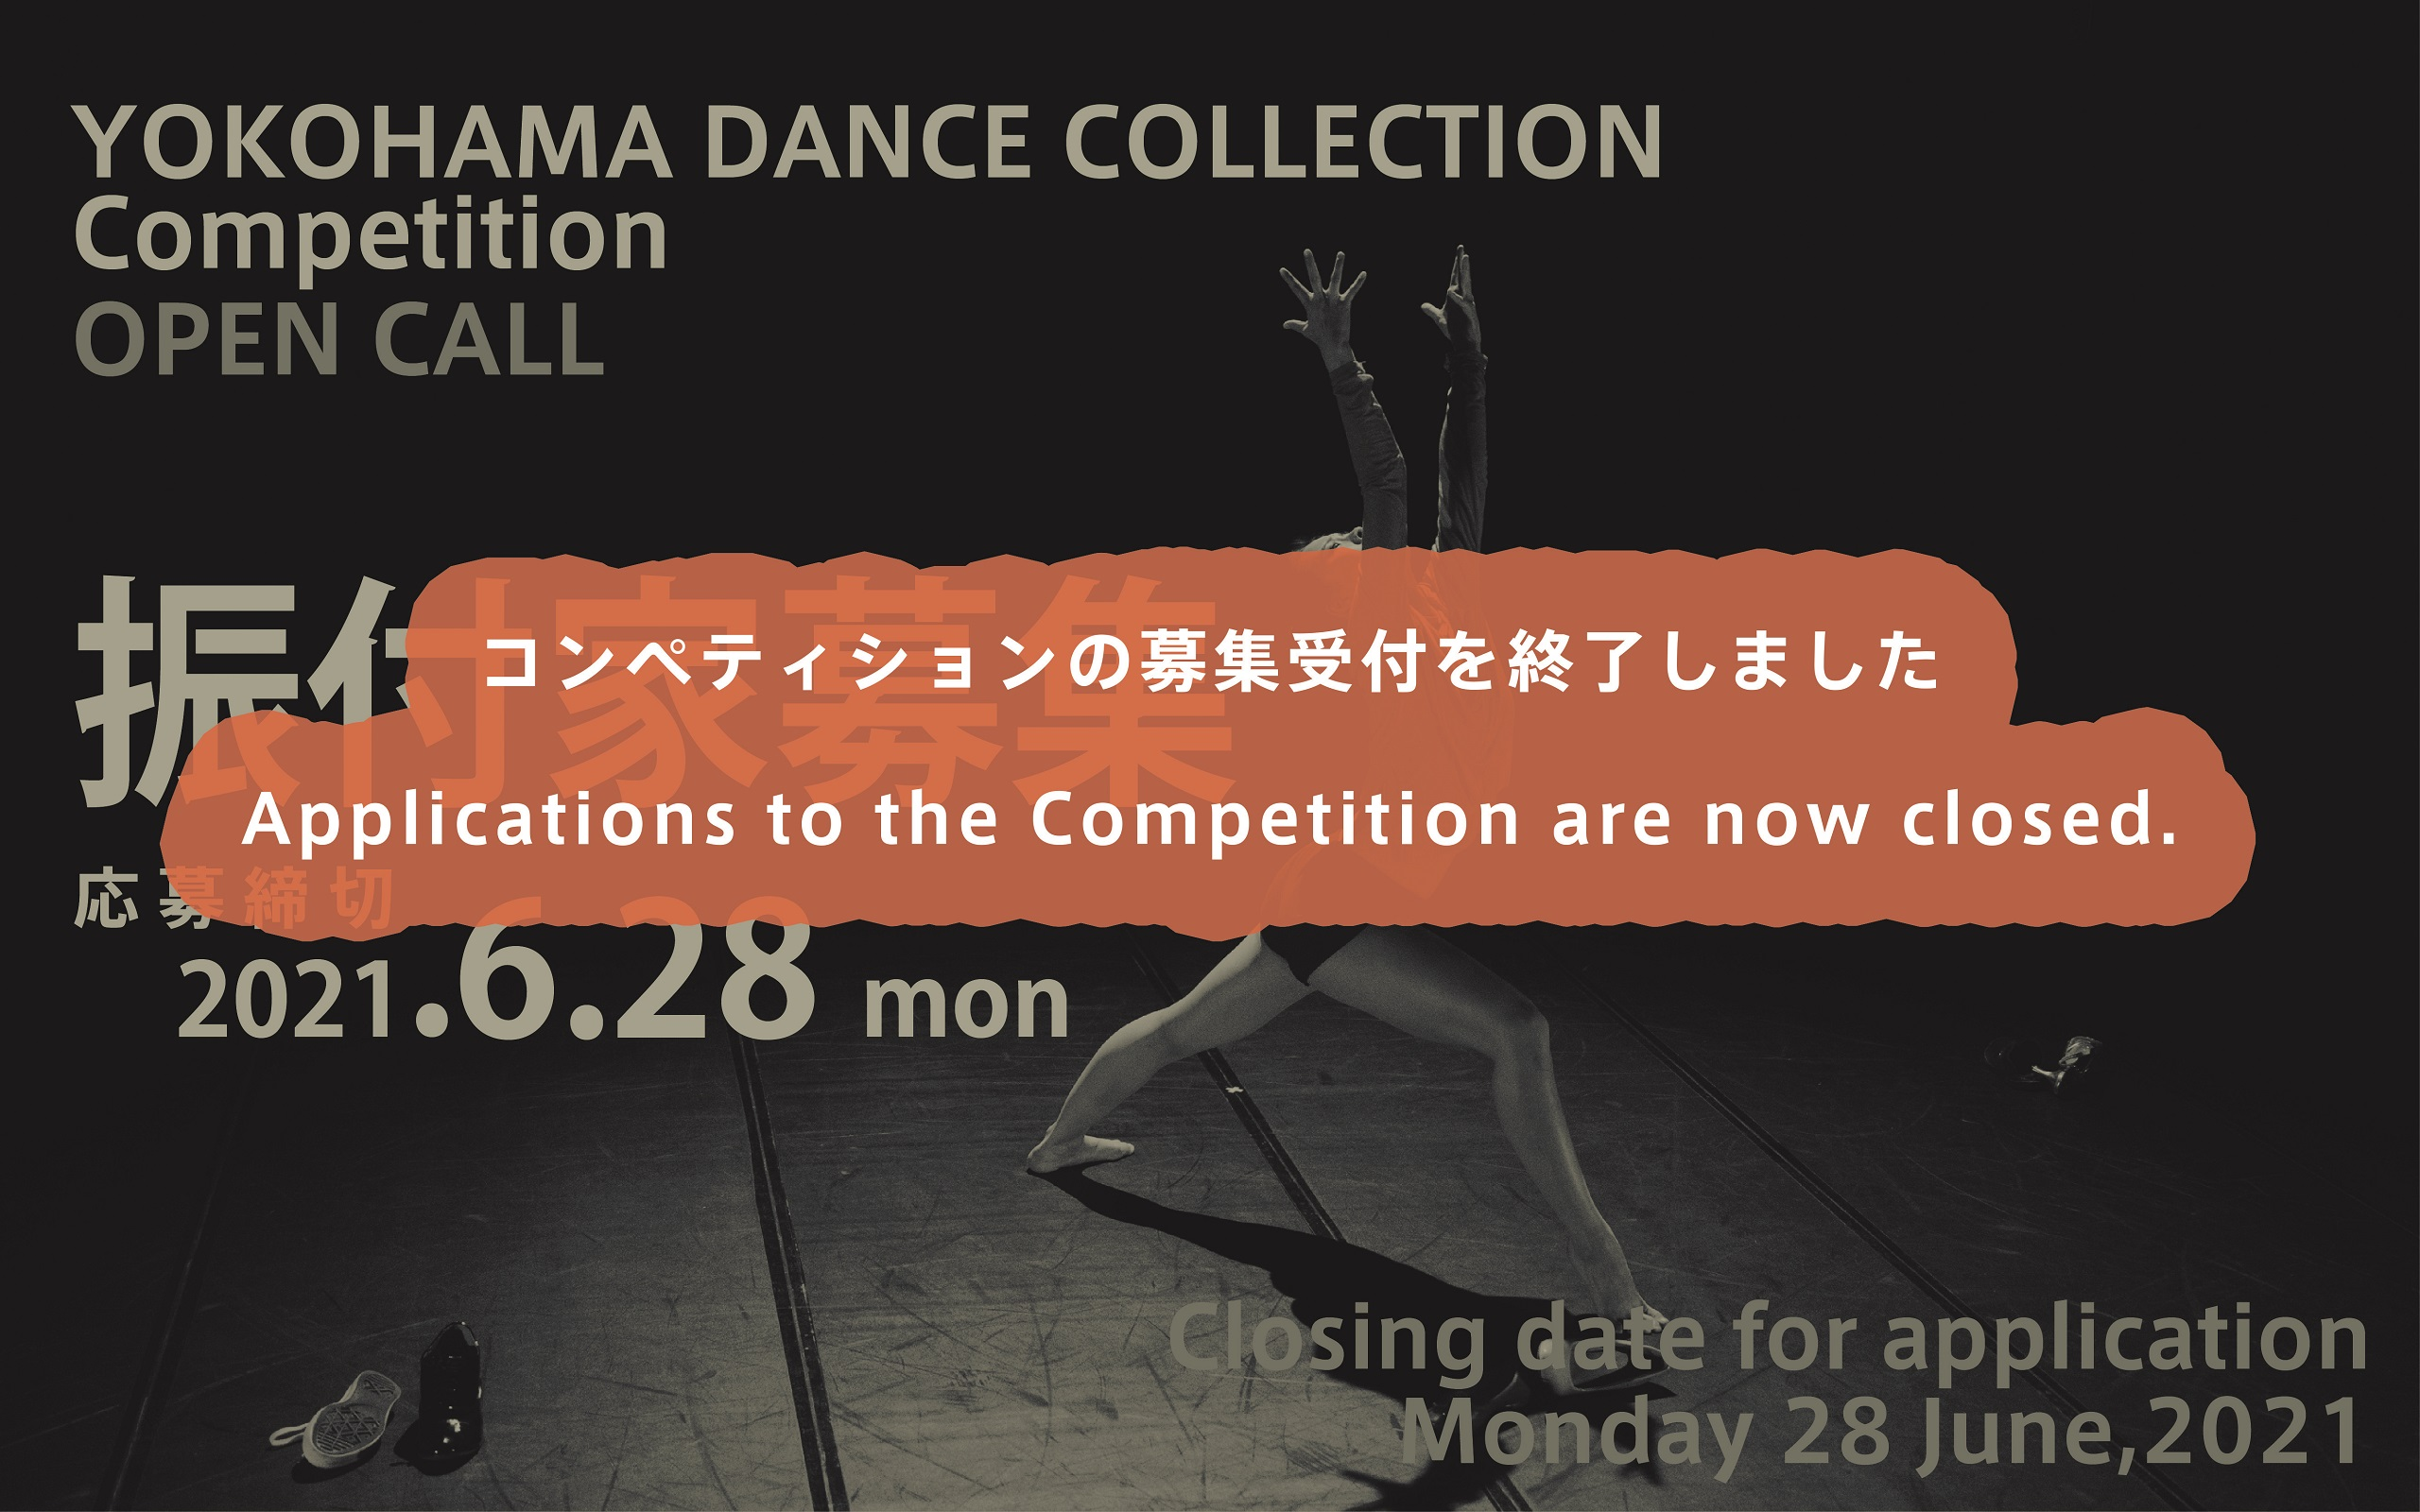 YOKOHAMA DANCE COLLECTION Competition OPEN CALL 振付家募集 応募締切 2021.6.28 mon Closing data for application Monday 28 june, 2021